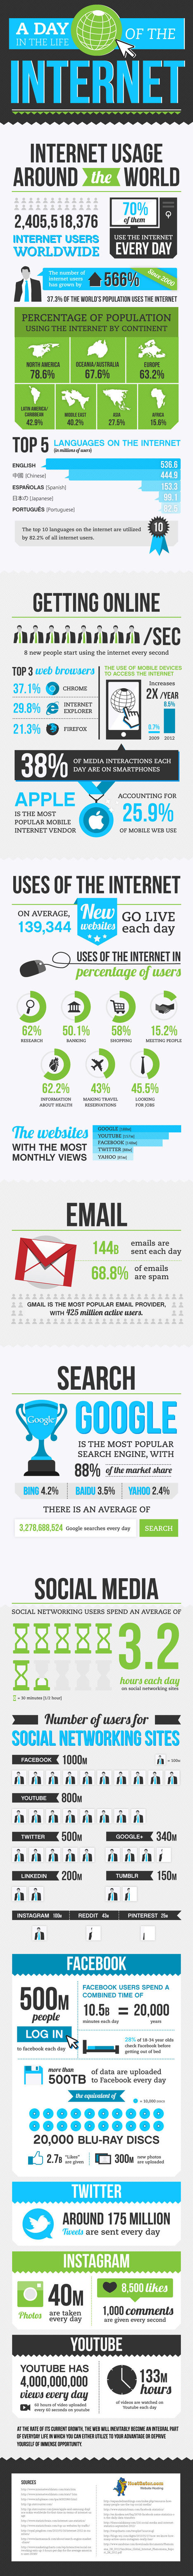 A Day In The Life Of The Internet – infographic | DV8 Digital Marketing Tips and Insight | Scoop.it